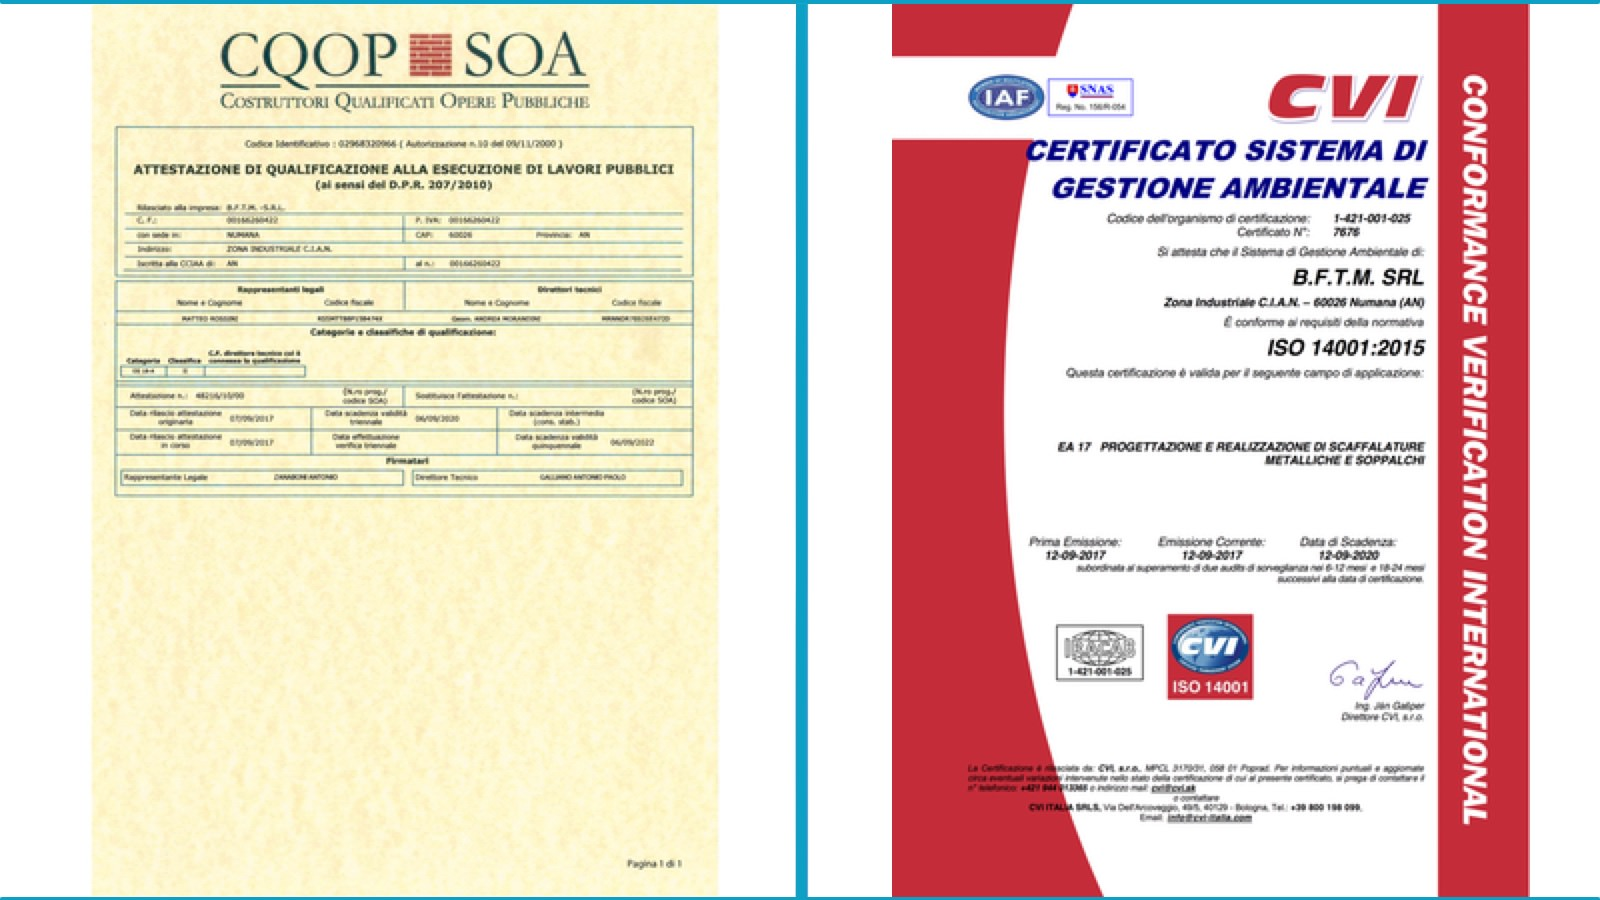 Bftm obtain further certification for the Integrated Quality-Environment-Safety Management System